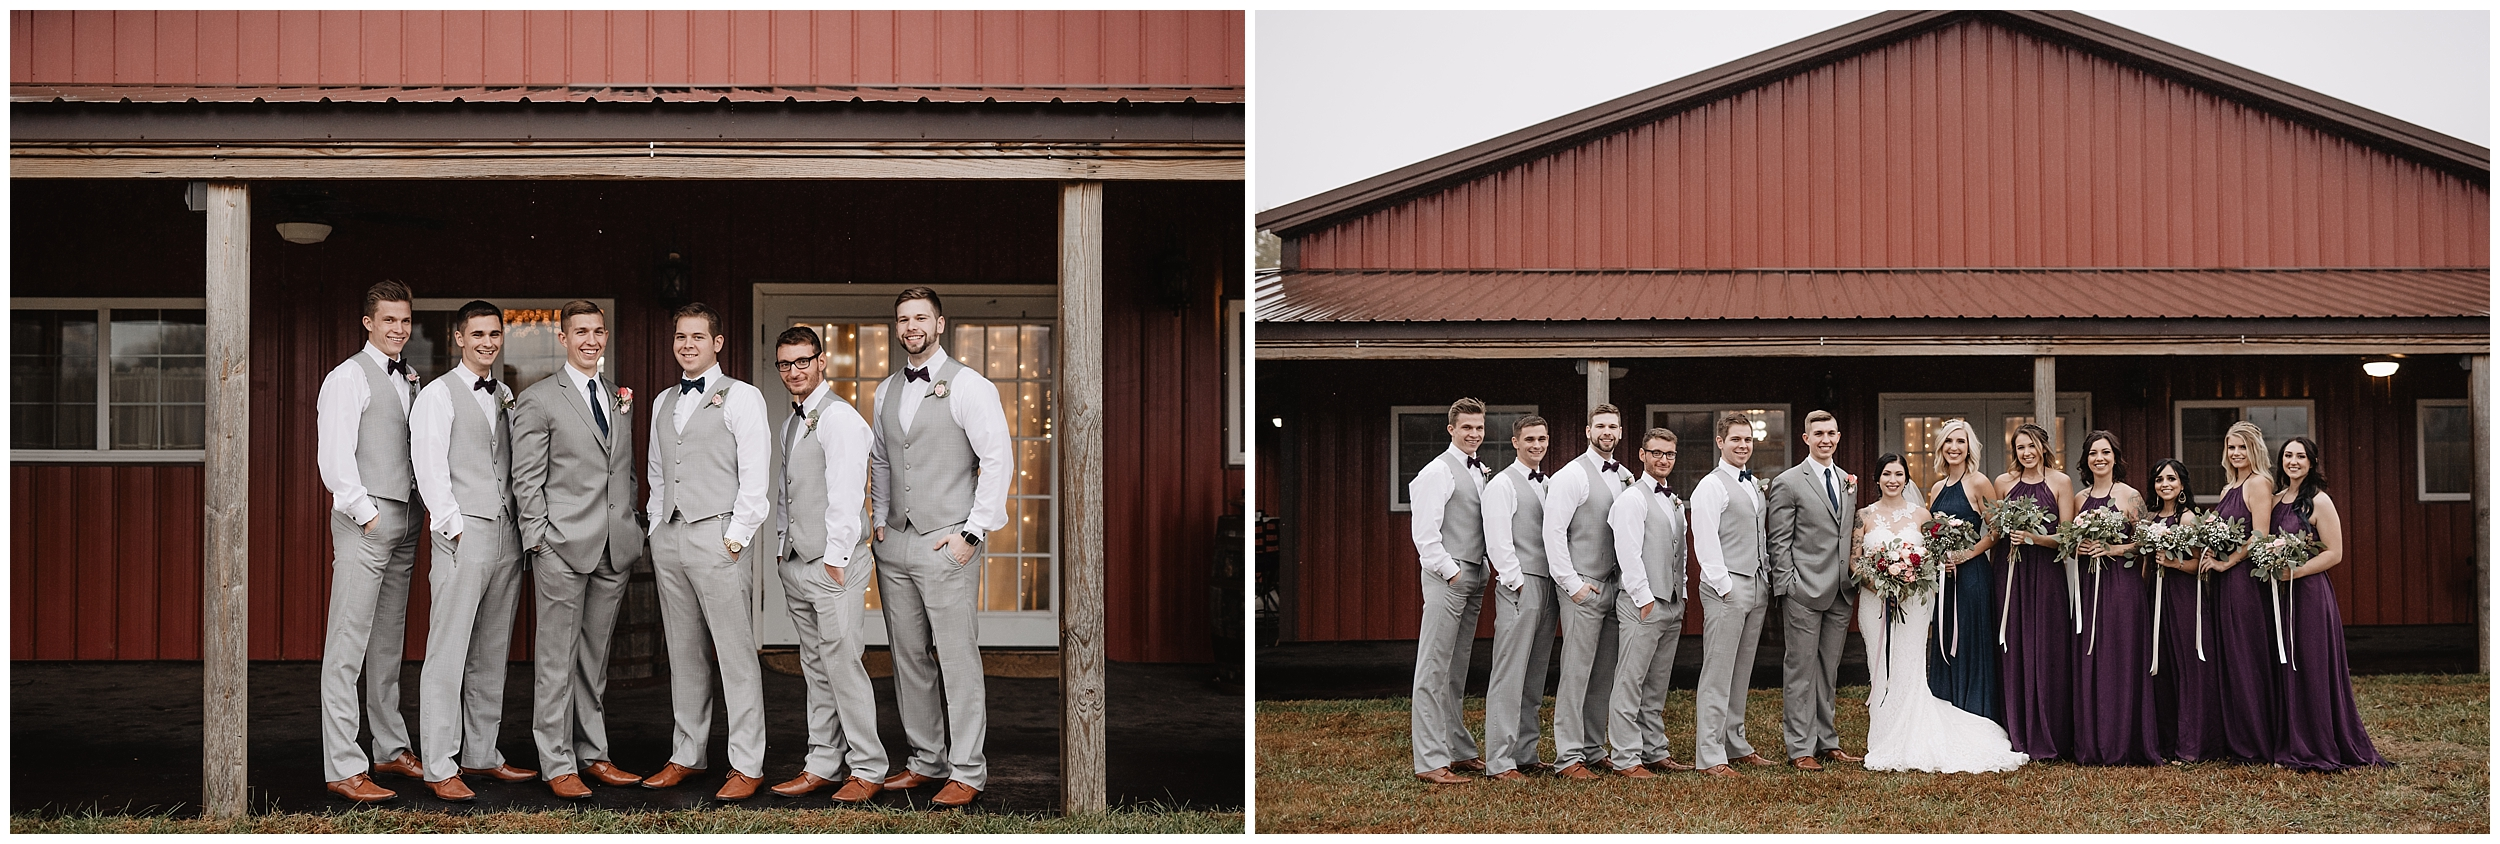 wedding portraits oklahoma wedding photographer outdoors wedding party bridesmaids groomsmen  oklahoma wedding photographer bride groom wedding day outside viola kansas rustic timbers